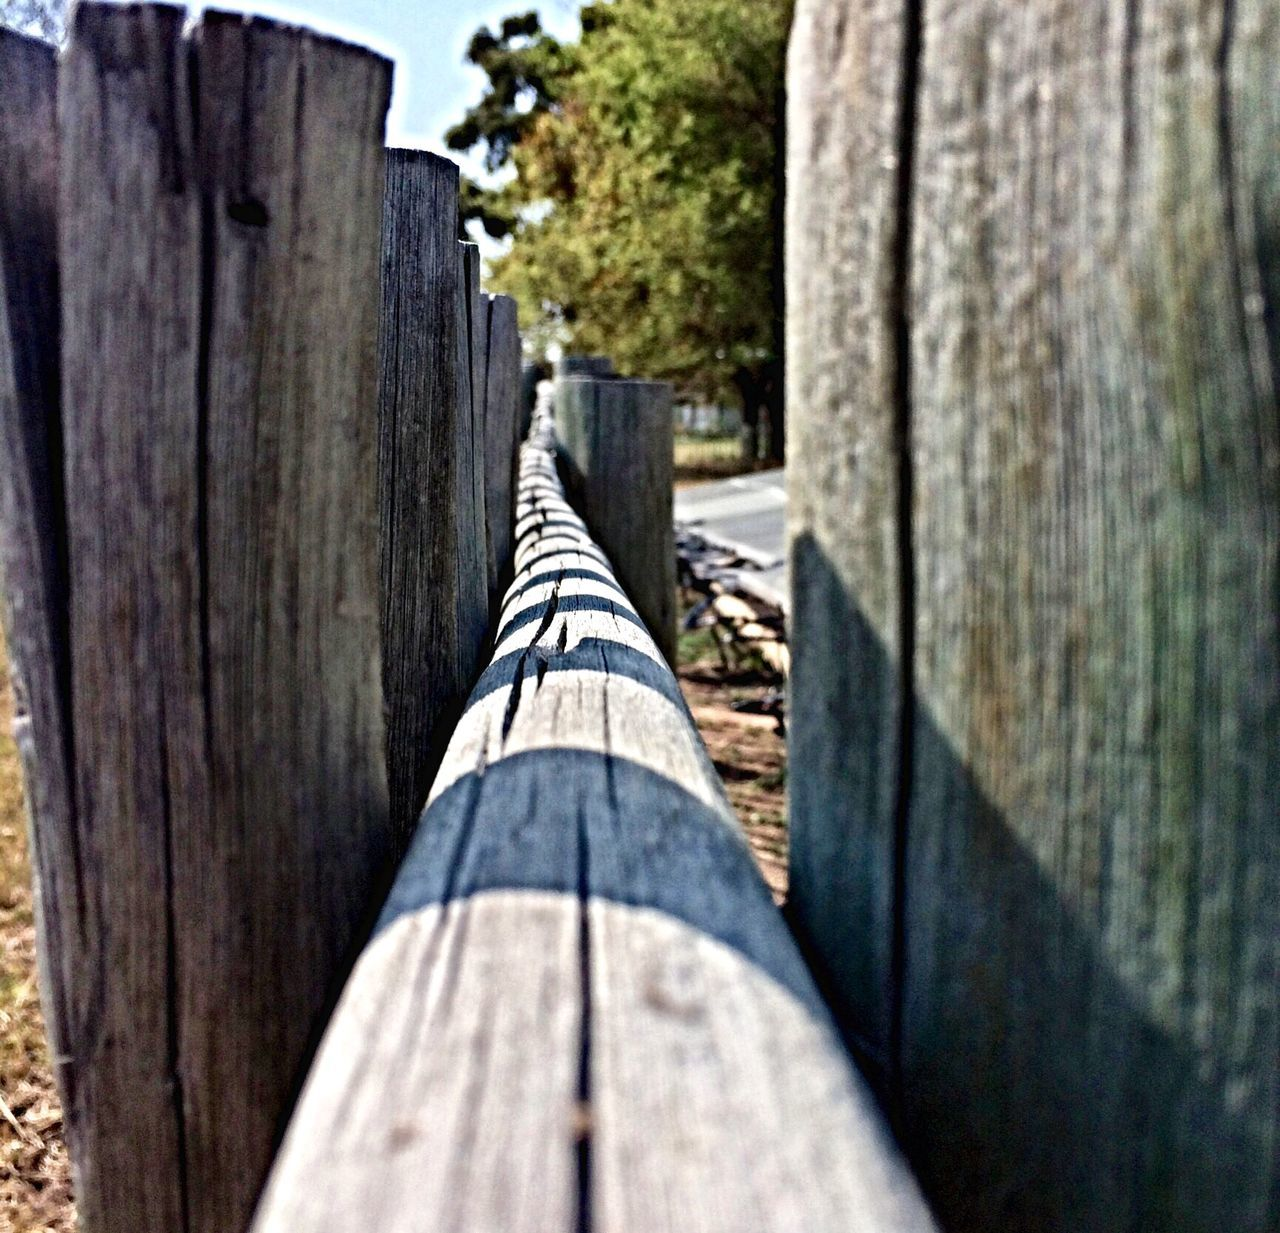 Close-Up Of Sunlight Falling On Wooden Posts